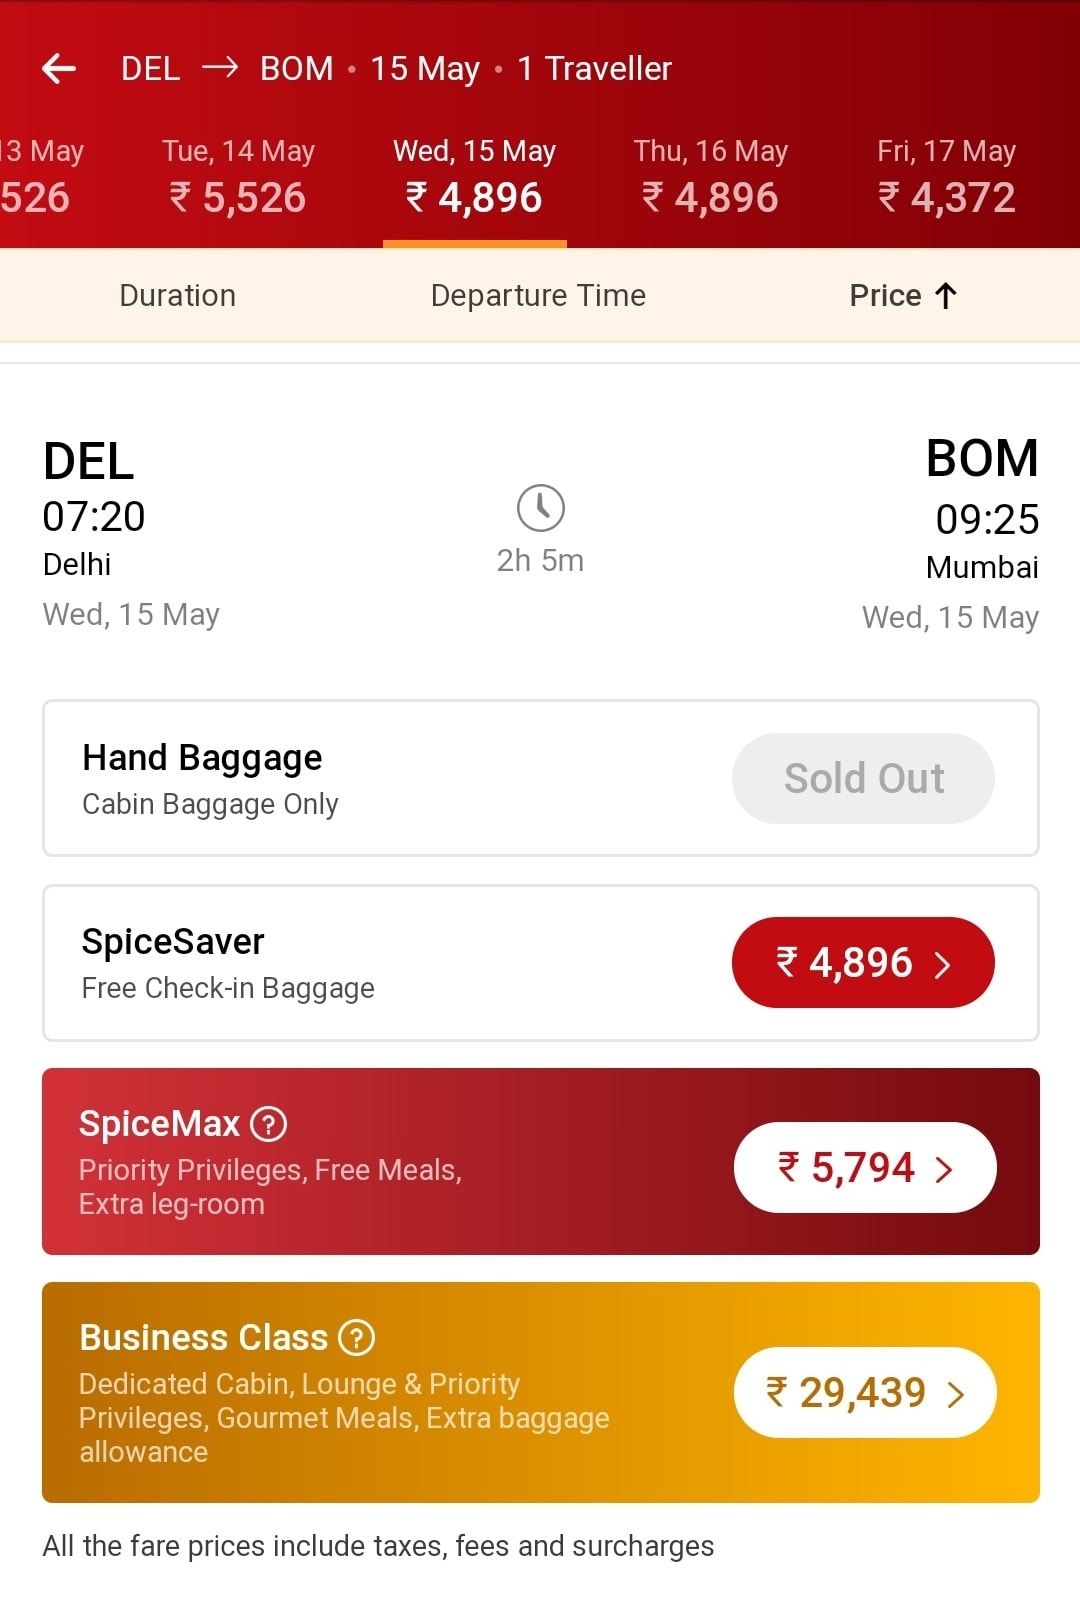 SpiceJet reboots unexpectedly with a business class product